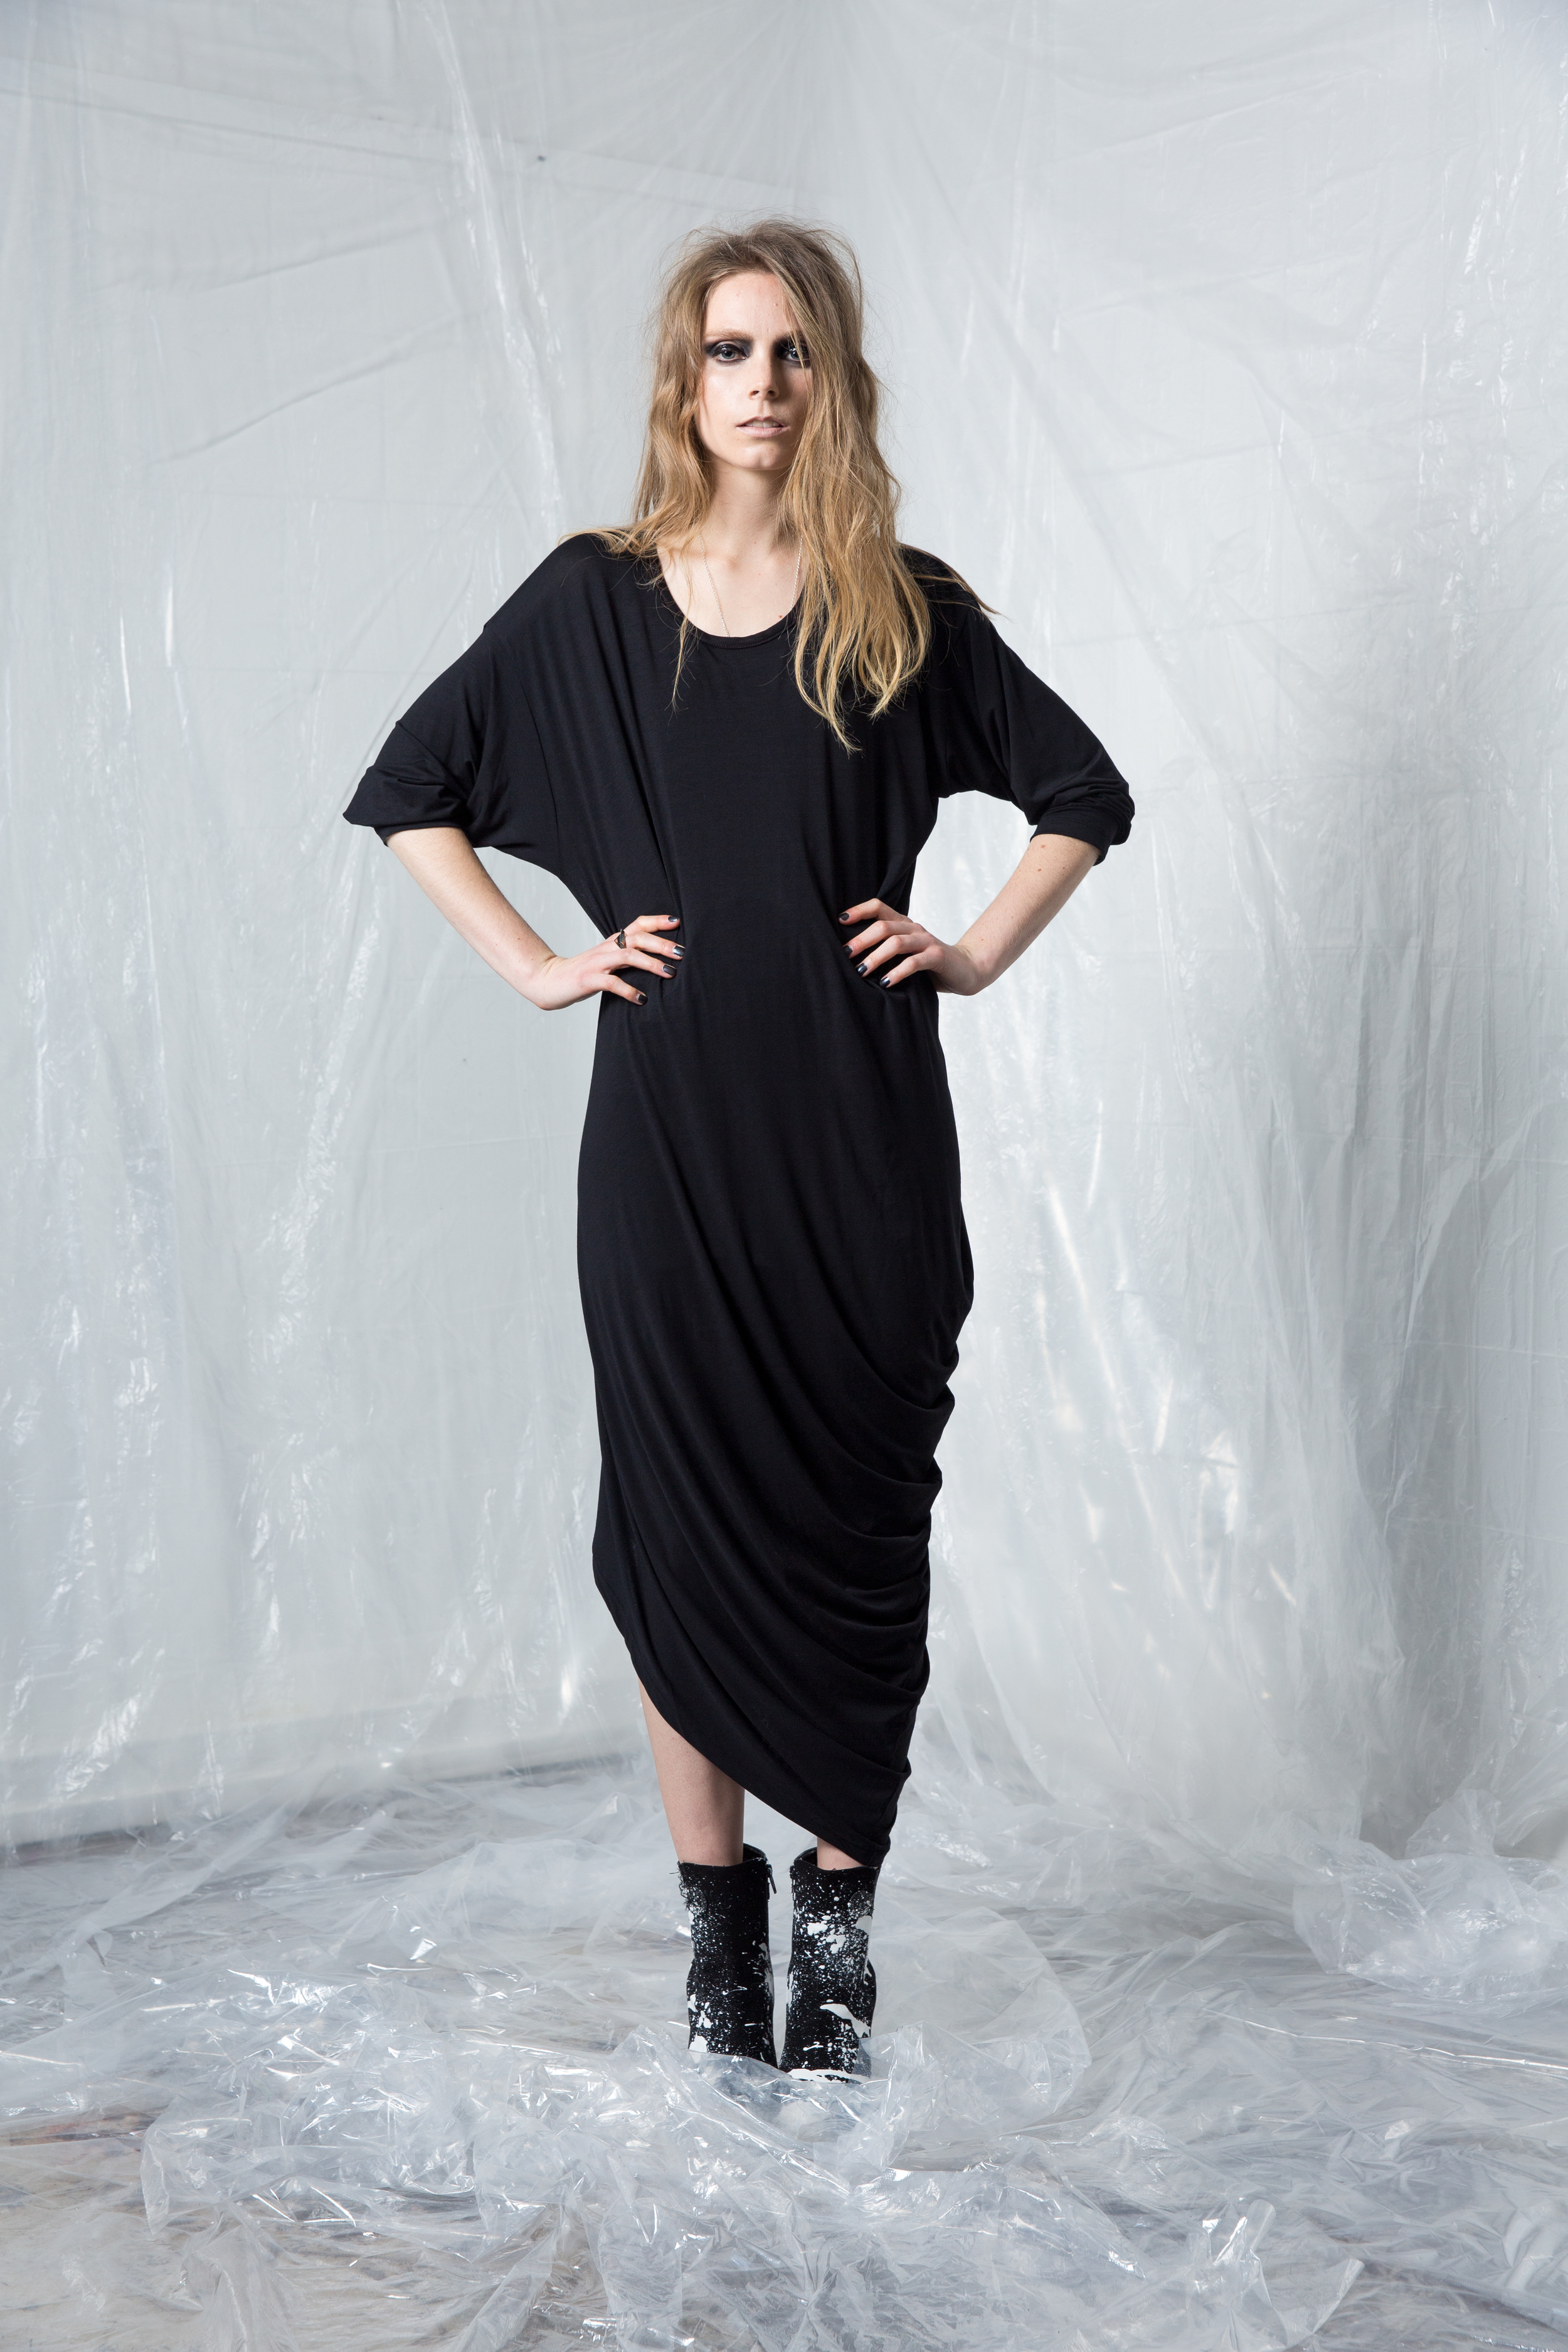 Maaike Winter 16 - 11 SEPT 2015-995.jpg